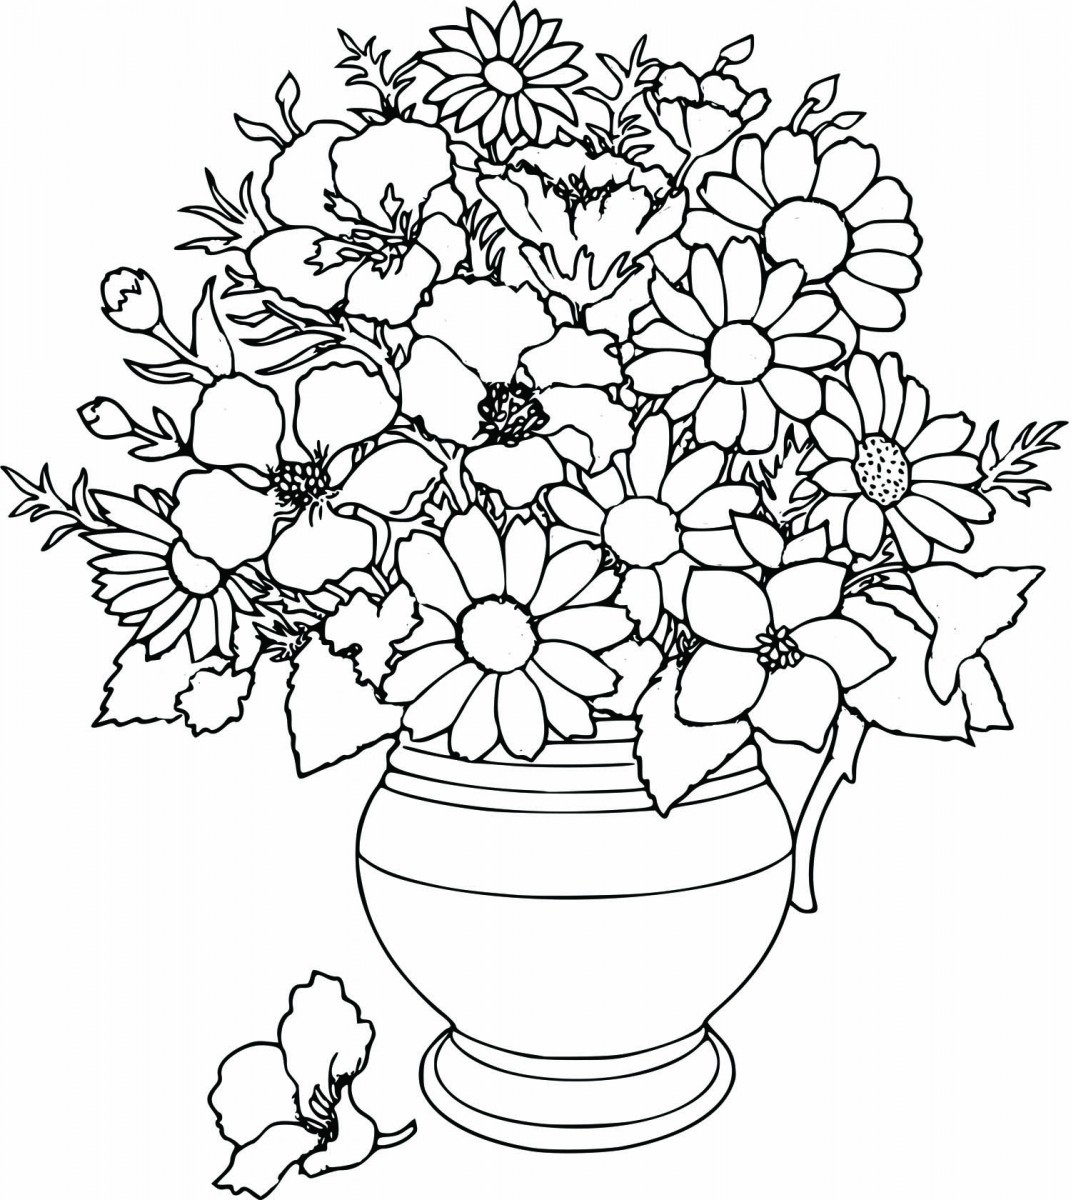 - Simple Flower Coloring Pages Free ~ Cute Printable Coloring Pages